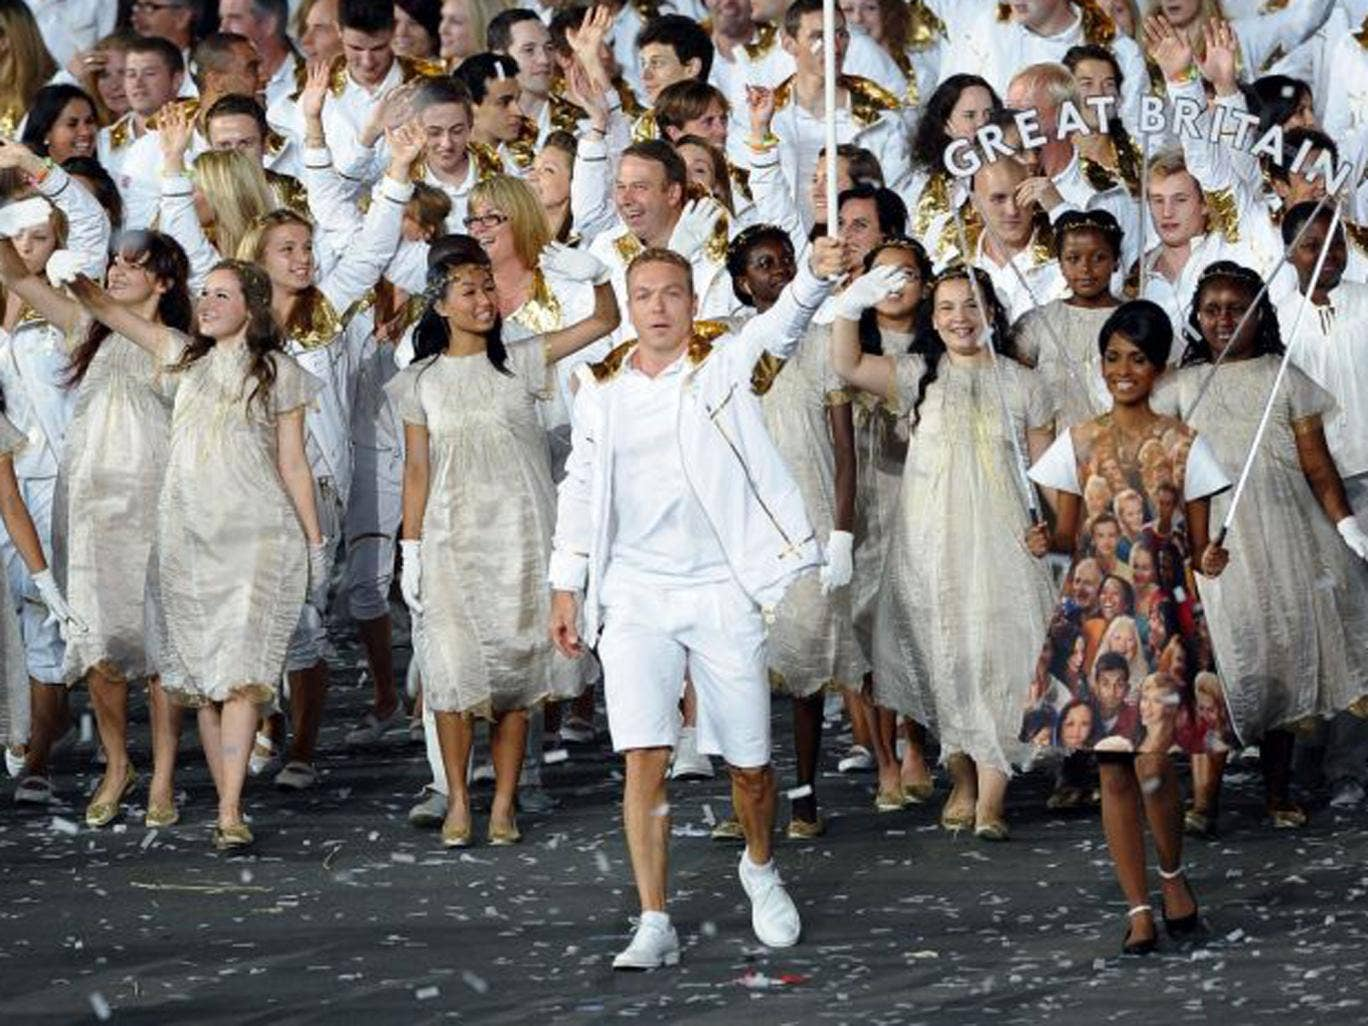 Sir Chris Hoy leads out Britain's Olympic team at the opening ceremony